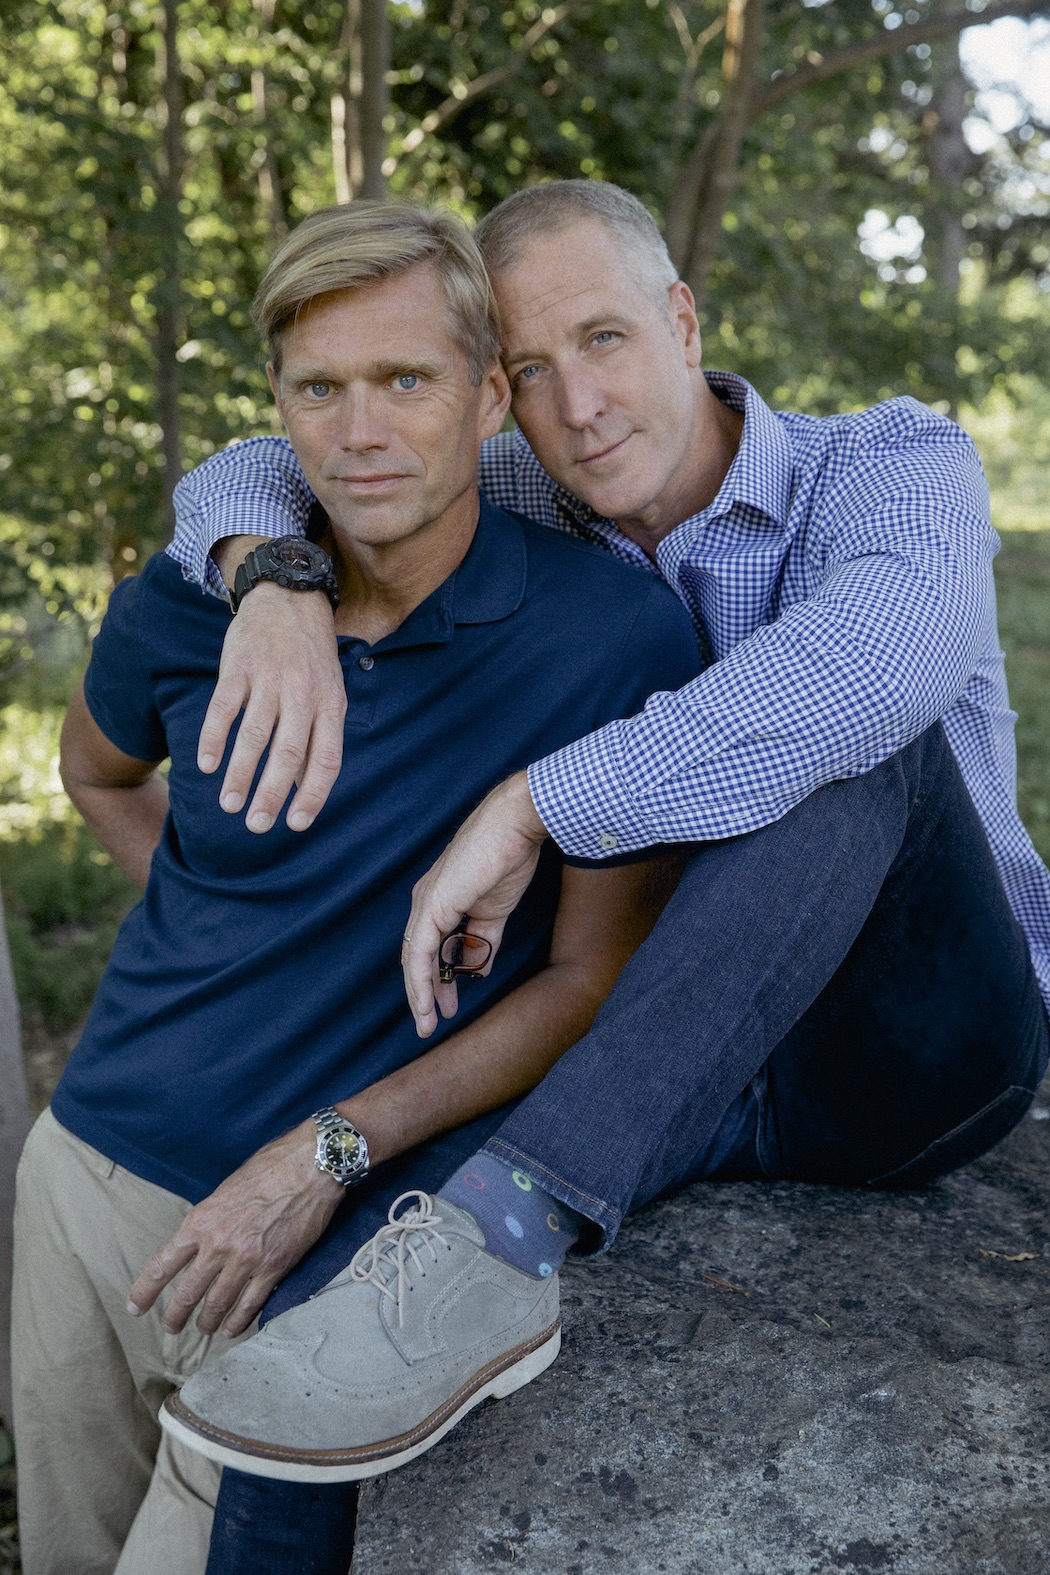 Maloney married his longtime partner, home designer Randy Florke, in 2014 and they have three children. Rep. Nancy Pelosi gave a toast at their wedding.